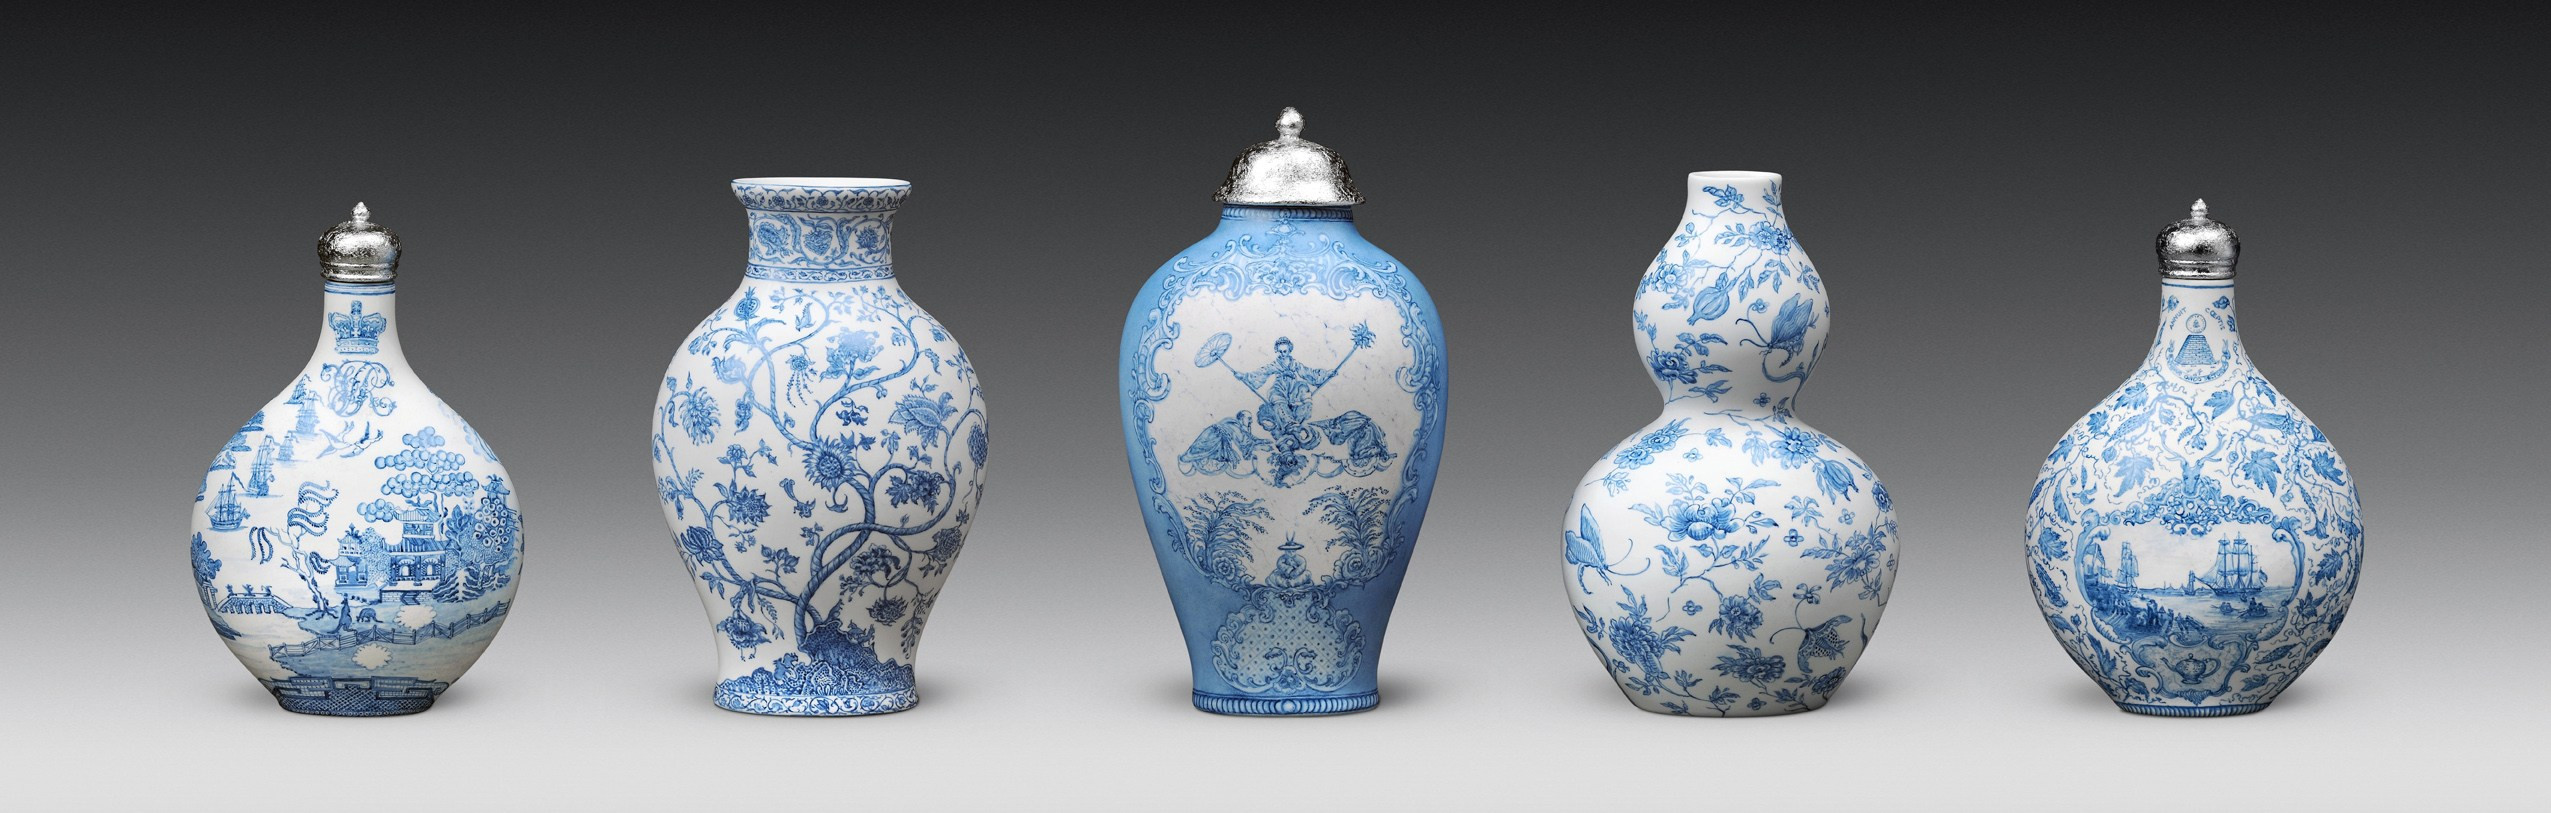 blue white porcelain vase of new blue and white ferrin contemporary intended for robin best the british east india company trade and war 2012